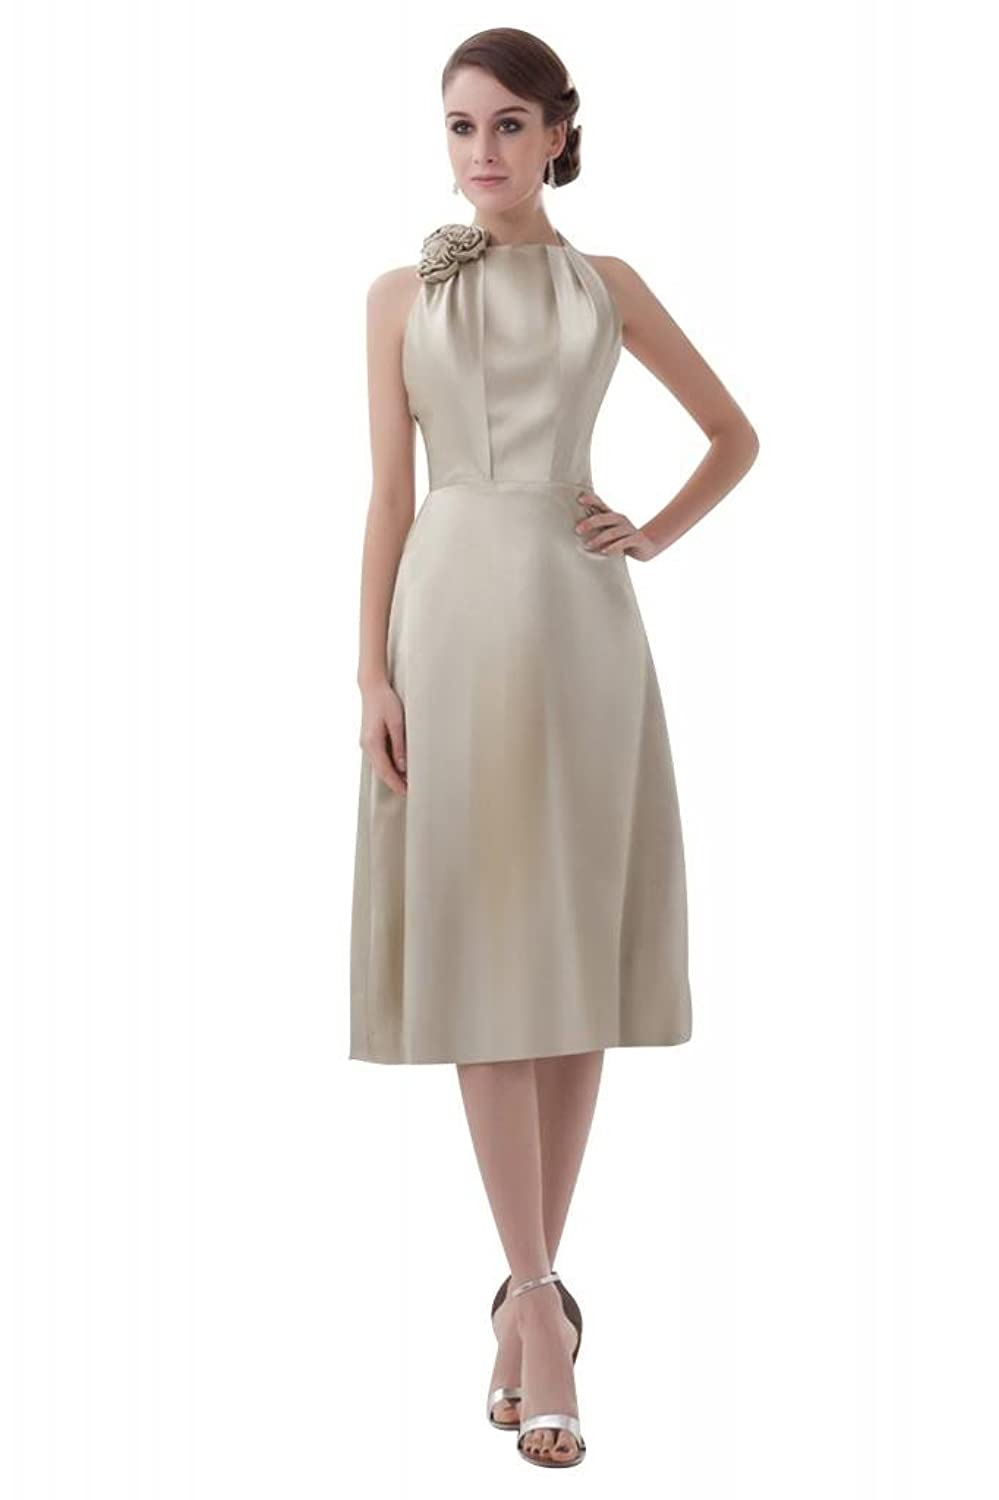 GEORGE BRIDE New Short Sleeveless Evening Dress